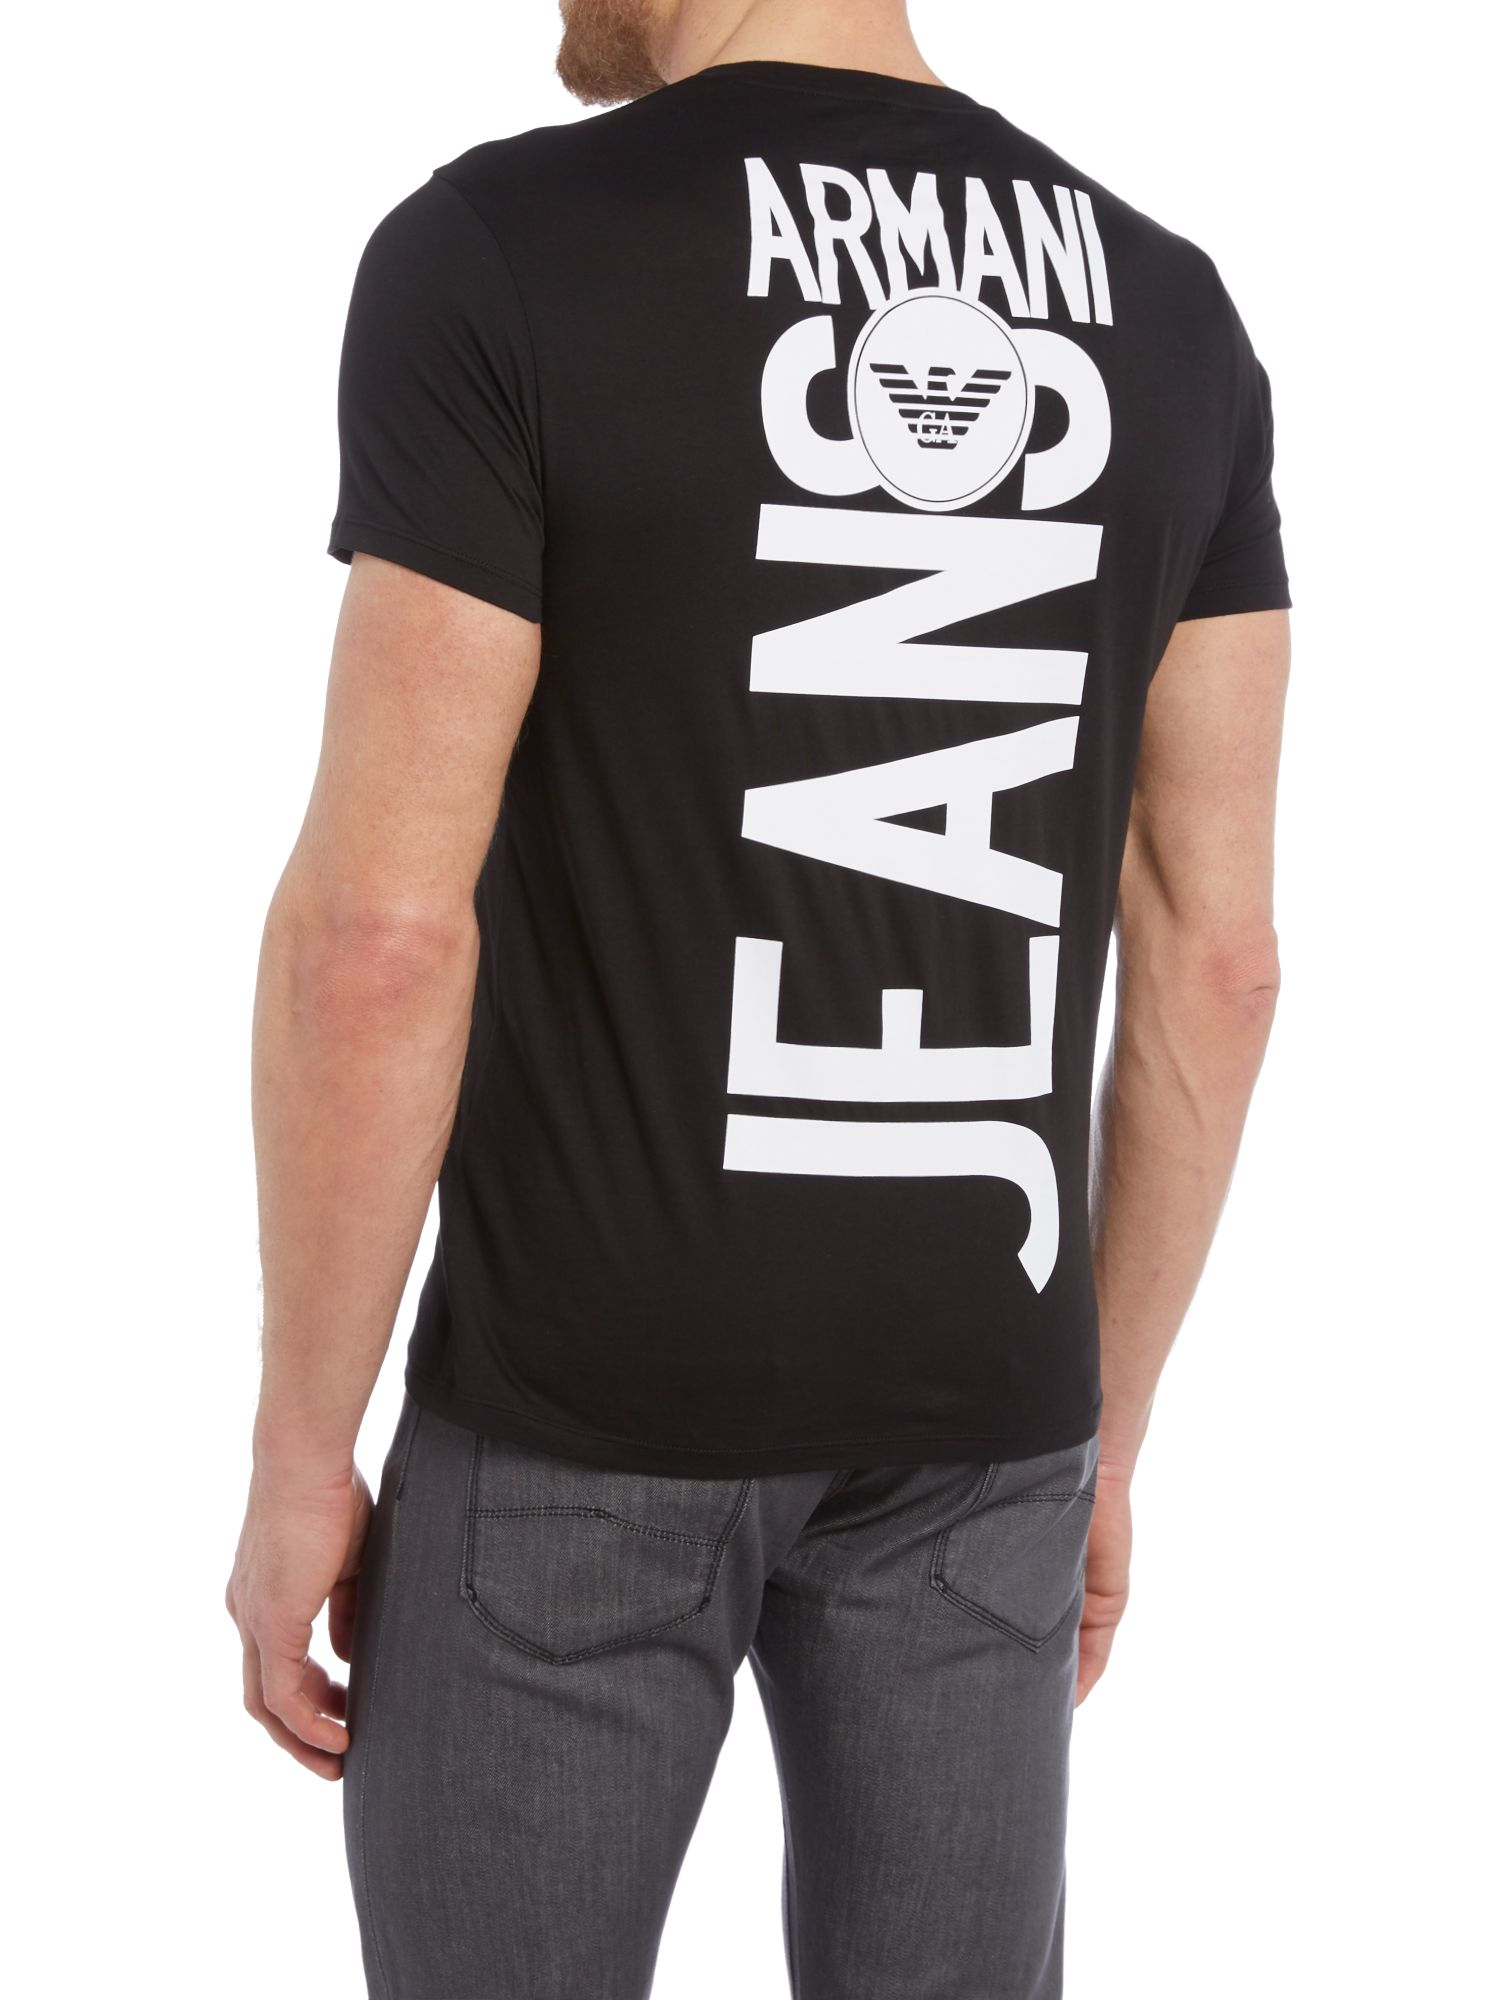 Armani jeans regular fit back graphic t shirt in black for for Shirts with graphics on the back